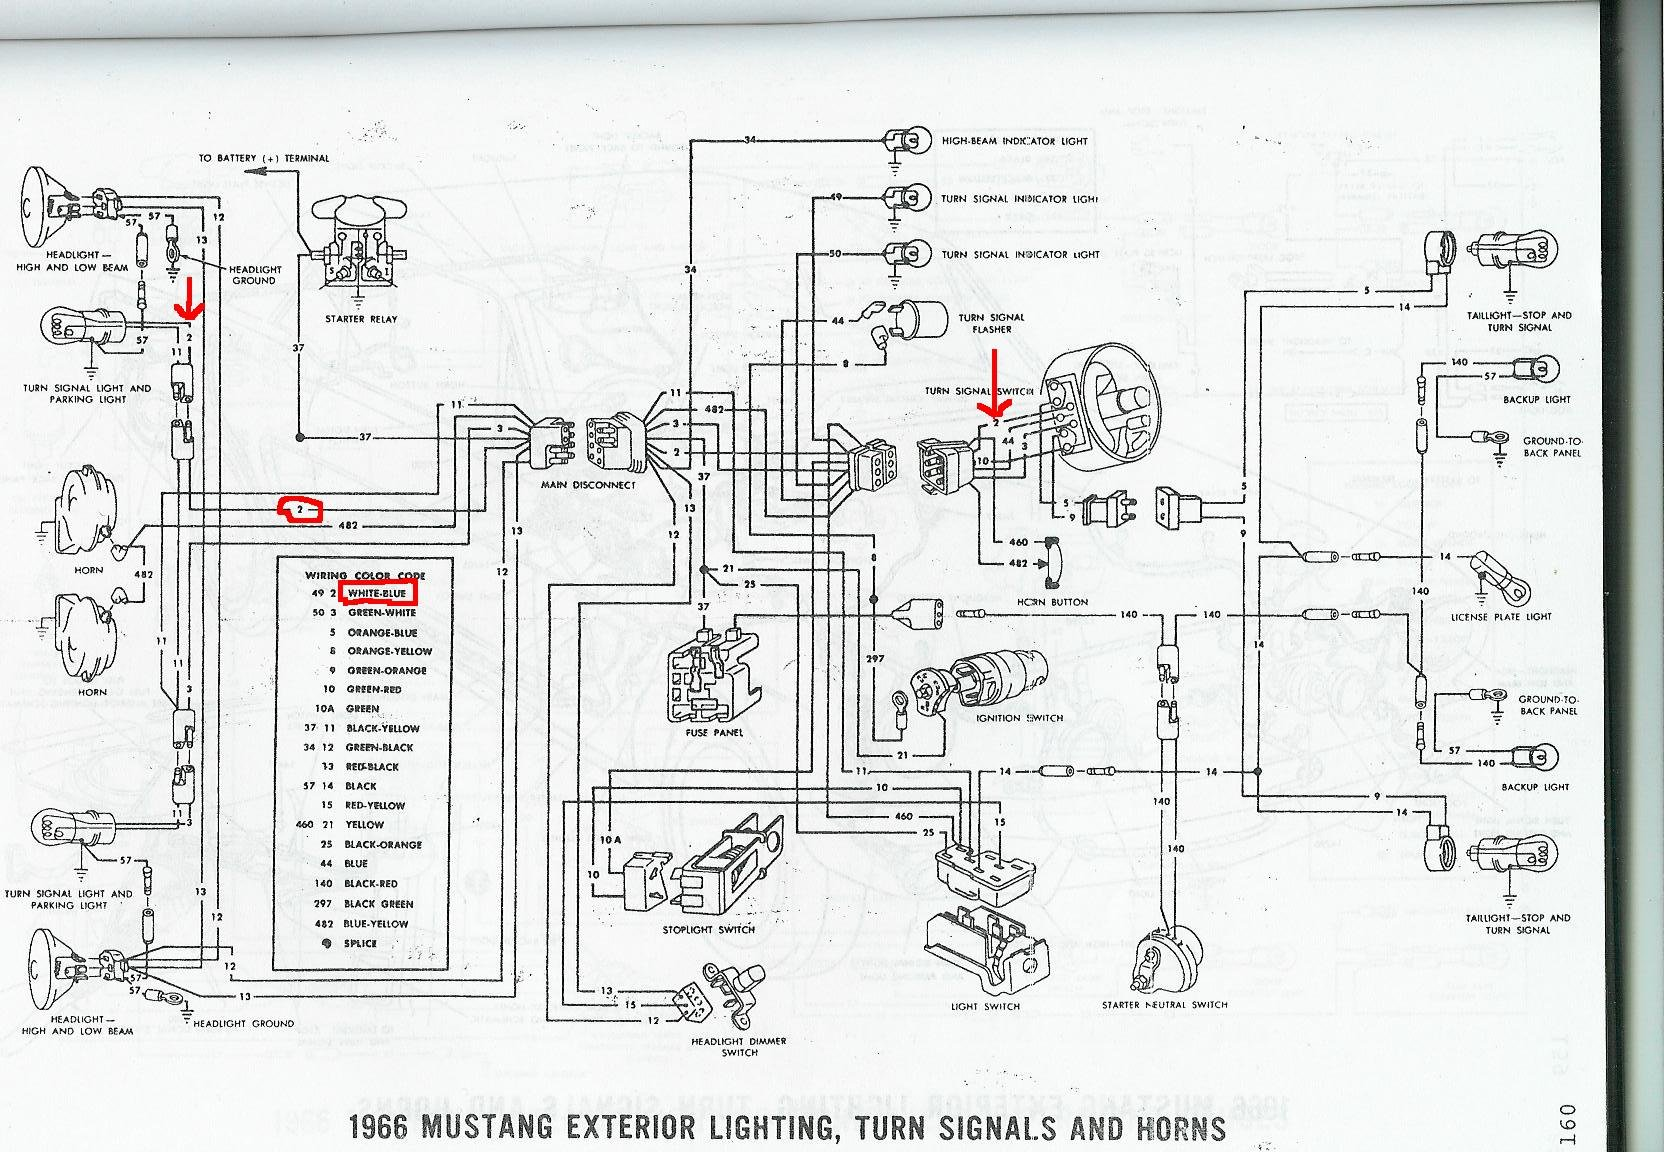 65 Mustang Brake Light Wiring Diagram Not Lossing 66 Chevy Under Hood Library Rh 38 Codingcommunity De Alternator